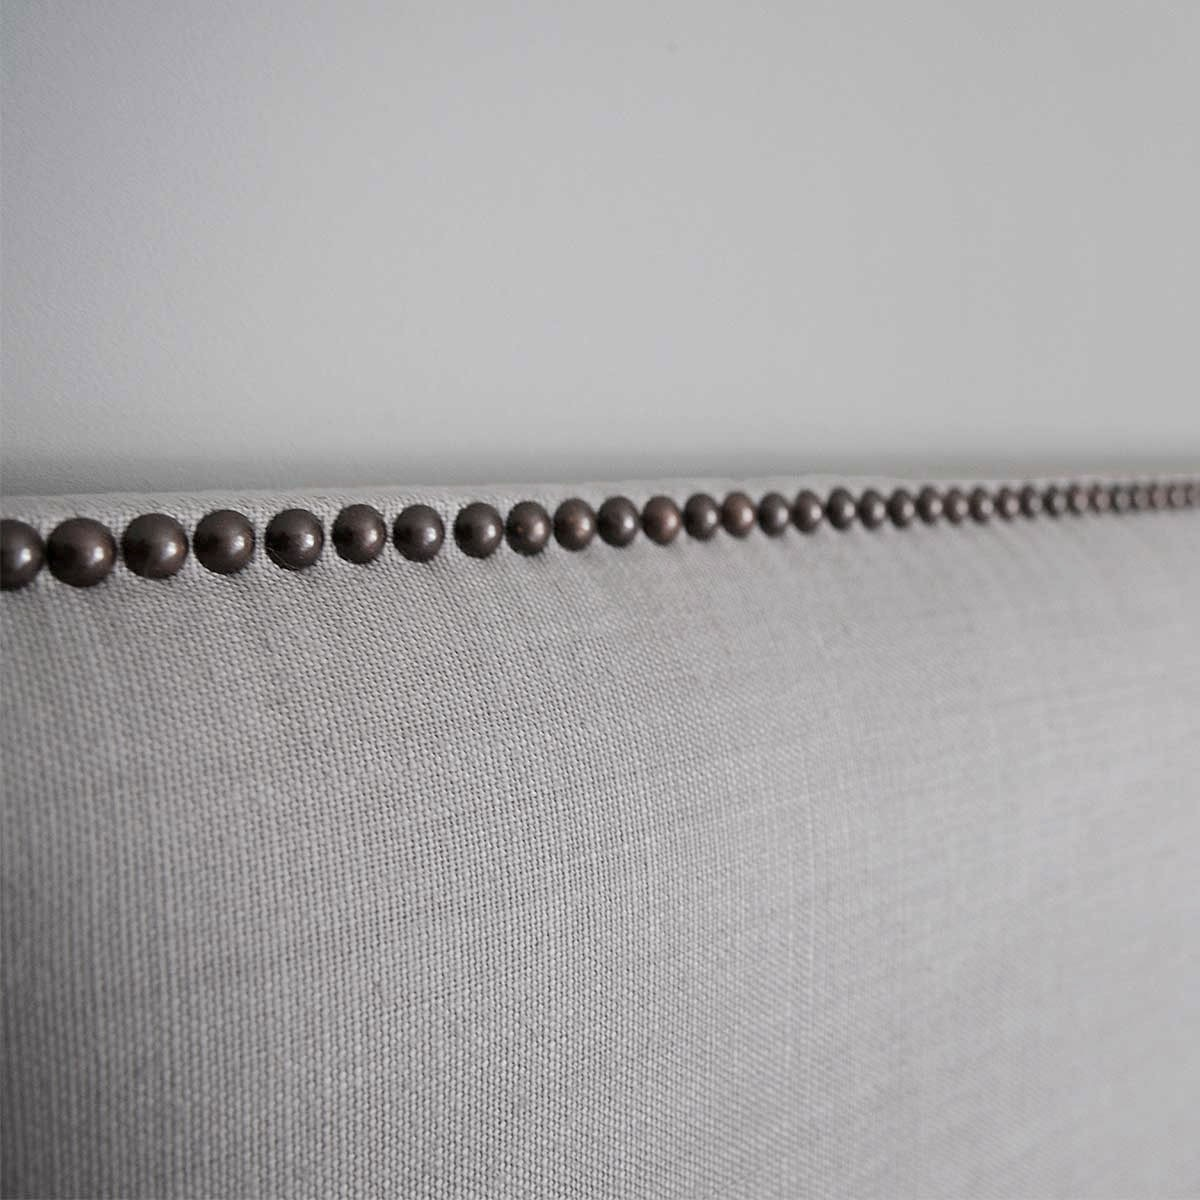 co insightfully like are curved headboard nail with studded ones heads compartment the headboards two on great storage